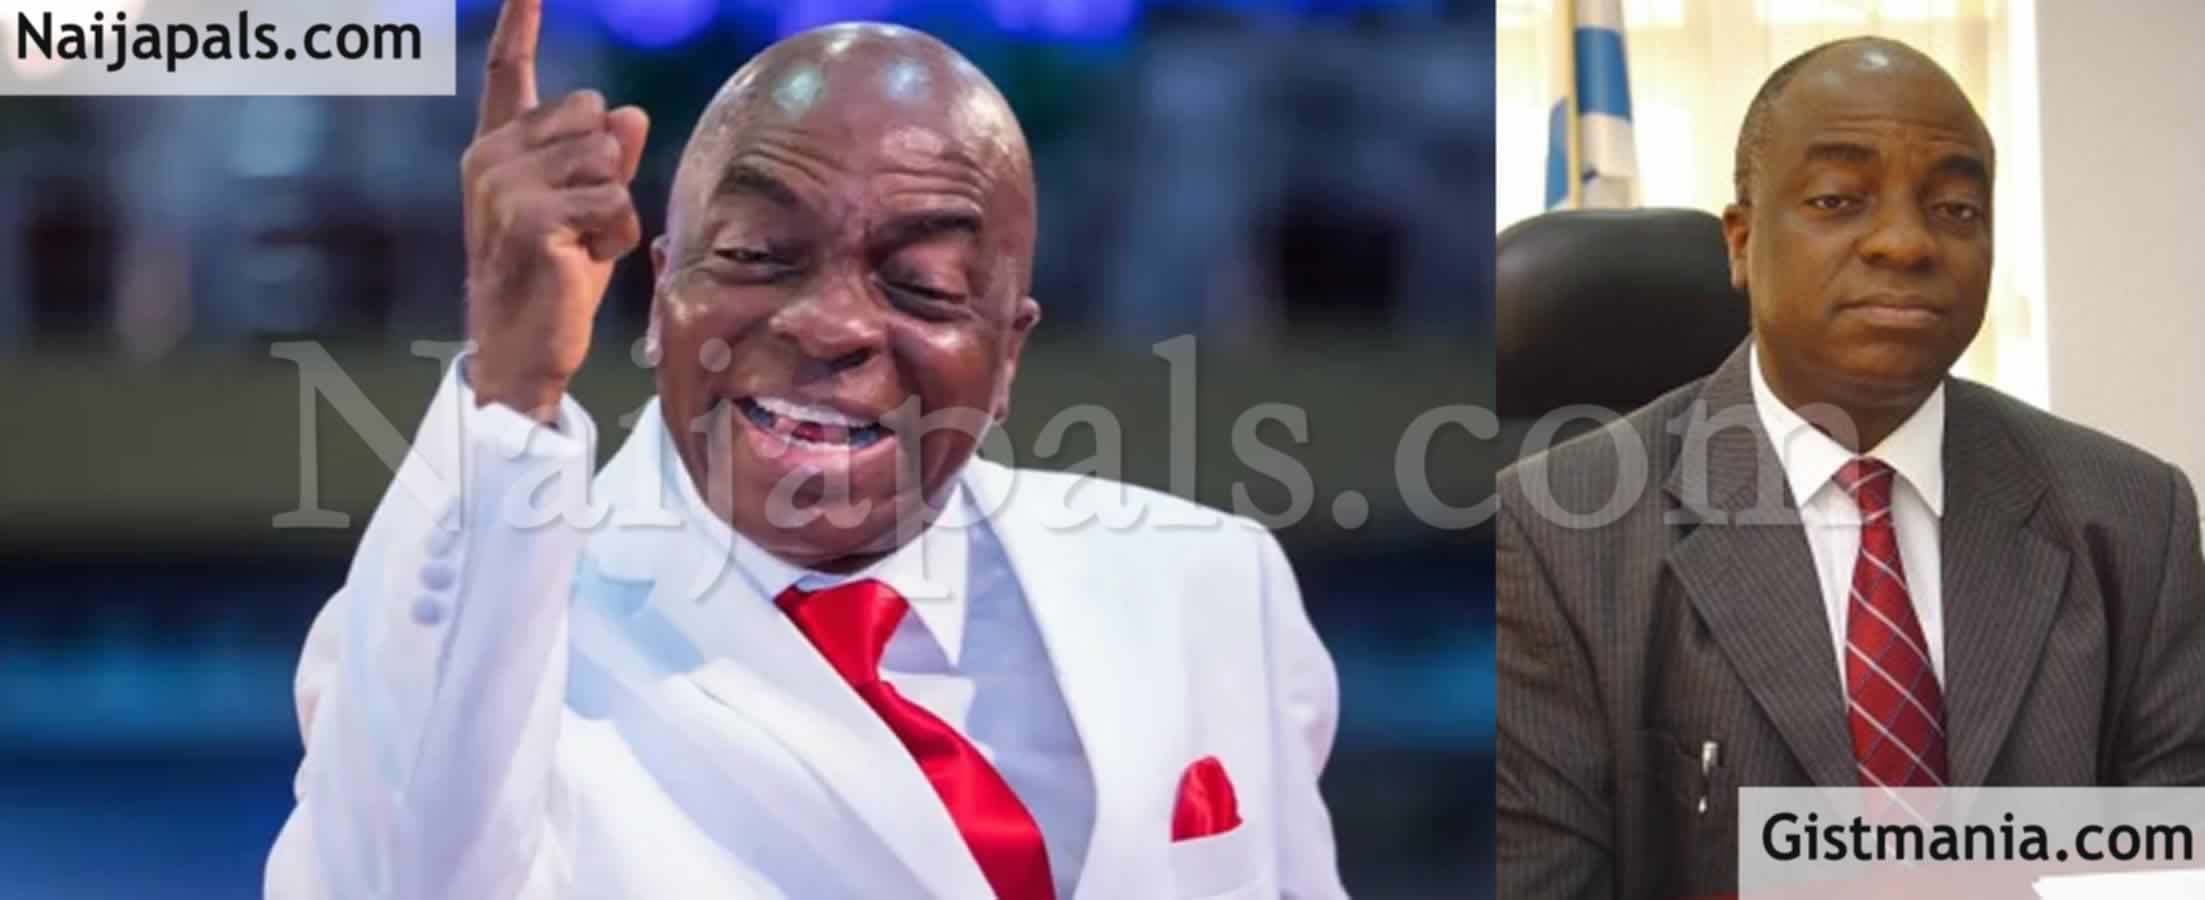 "<img alt='.' class='lazyload' data-src='https://img.gistmania.com/emot/comment.gif' /> <b>""I am Not Taking The COVID Vaccine"" - Bishop Oyedepo Of Winners Chapel Declares</b>"